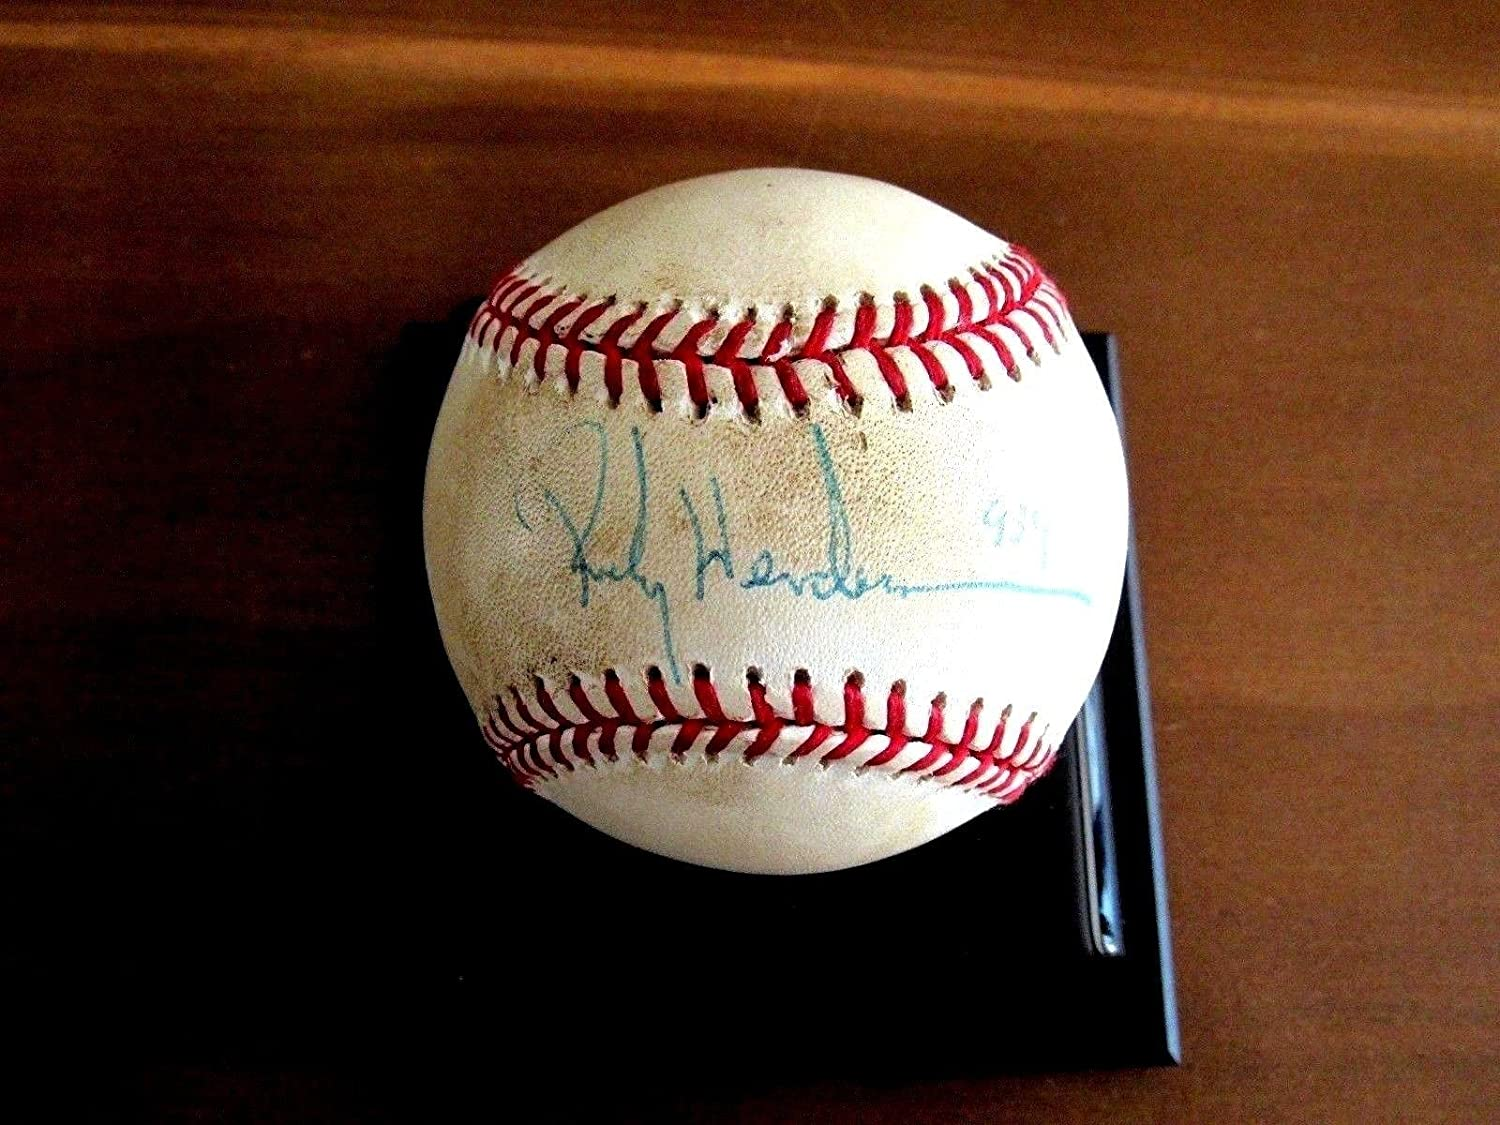 Rickey Henderson A s Stolen Base 939 Record Hof Signed Auto Gu Baseball -  PSA DNA Certified - MLB Game Used Baseballs at Amazon s Sports Collectibles  Store 05a765a1a